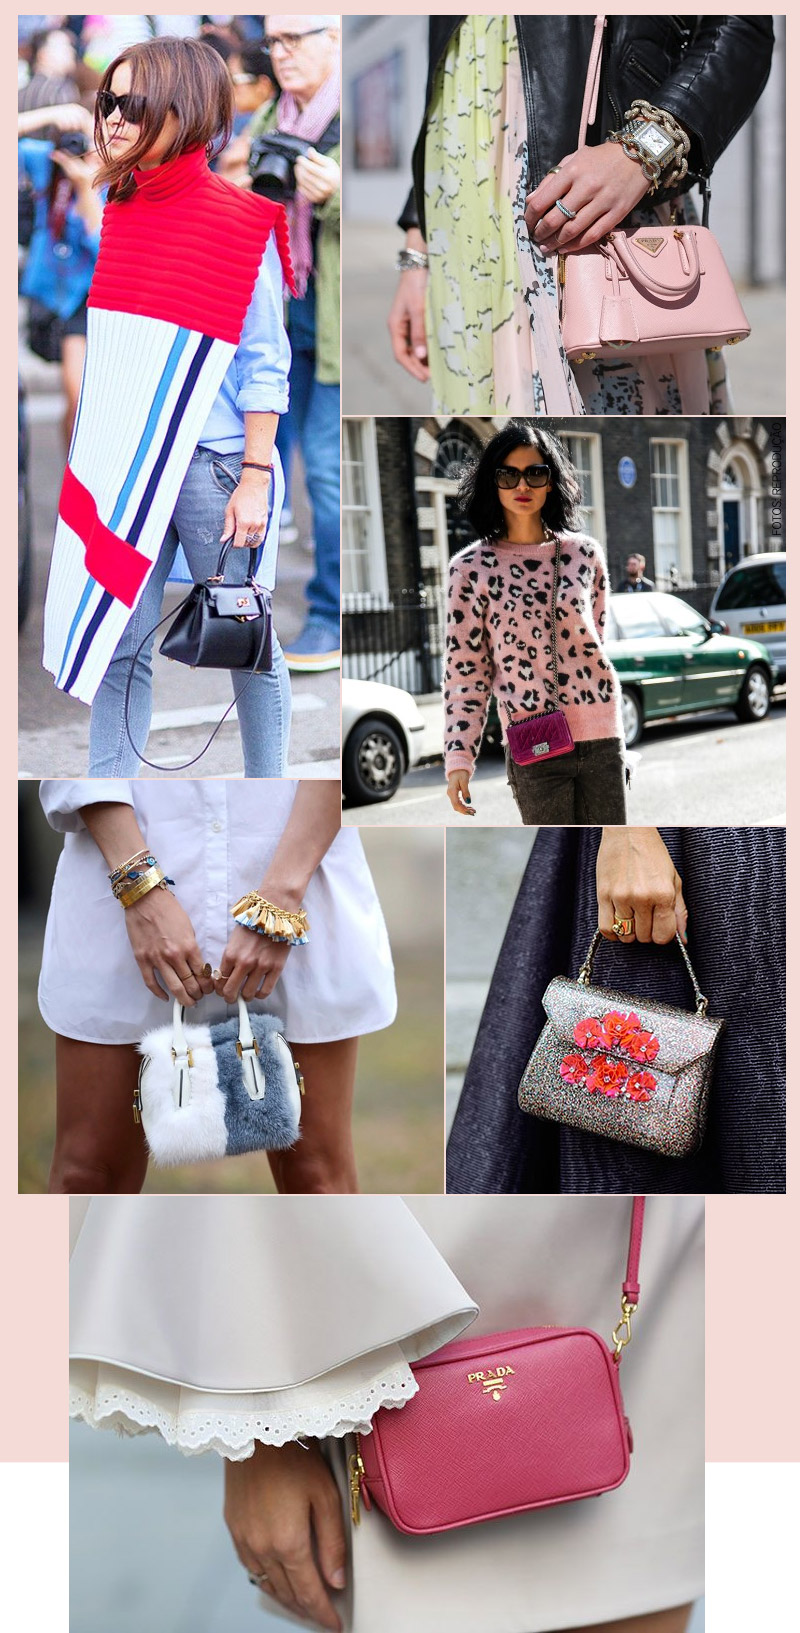 living-gazette-barbara-resende-moda-tendencia-mural-inspiracao-mini-bags-street-style-fashion-week